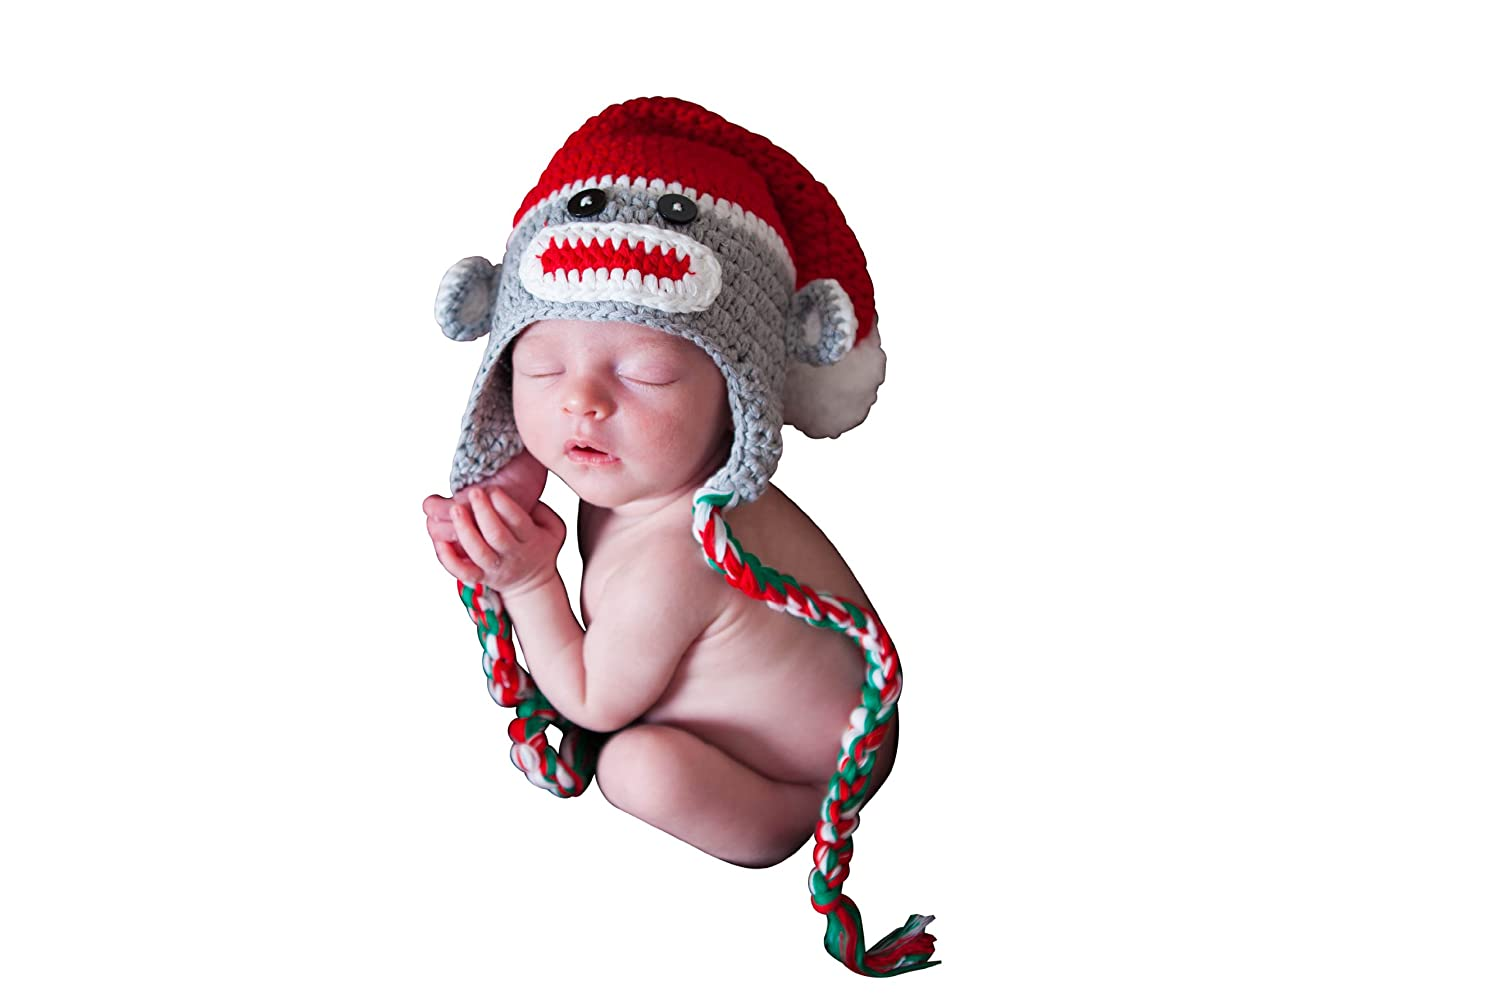 c35d50177ca Amazon.com  Melondipity Christmas Sock Monkey Baby Hat - Gender Neutral  Holiday Beanie  Infant And Toddler Hats  Clothing